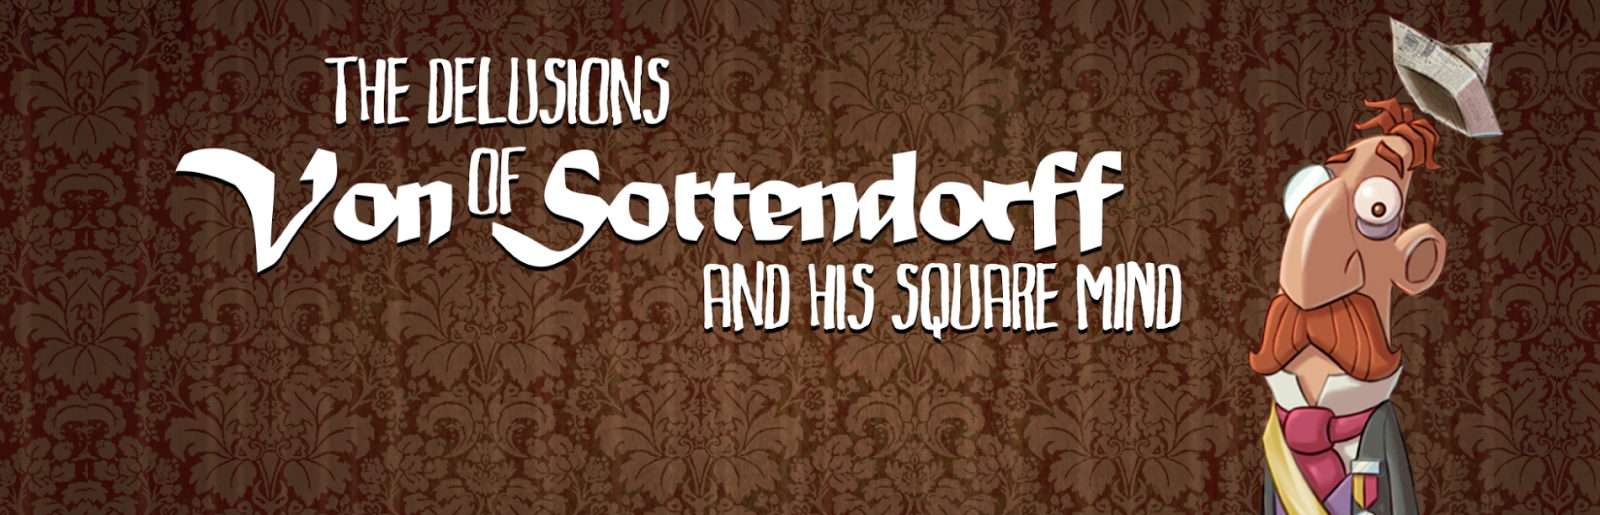 Review: The Delusions of Von Sottendorff and his Square Mind